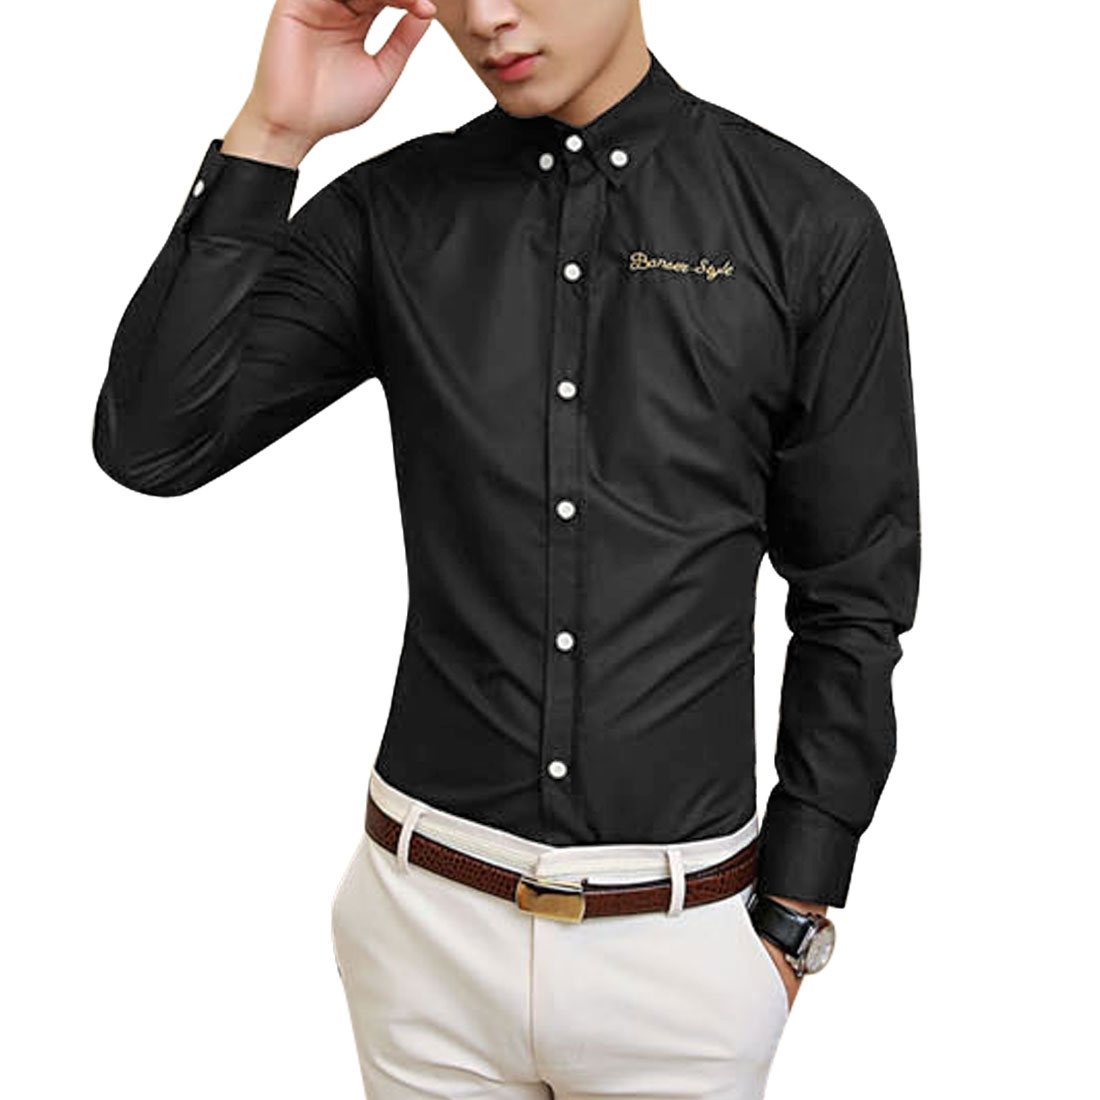 Azzuro Men's Button Cuffs Embroidery Letters Detail Casual Shirt Black (Size M / 40��